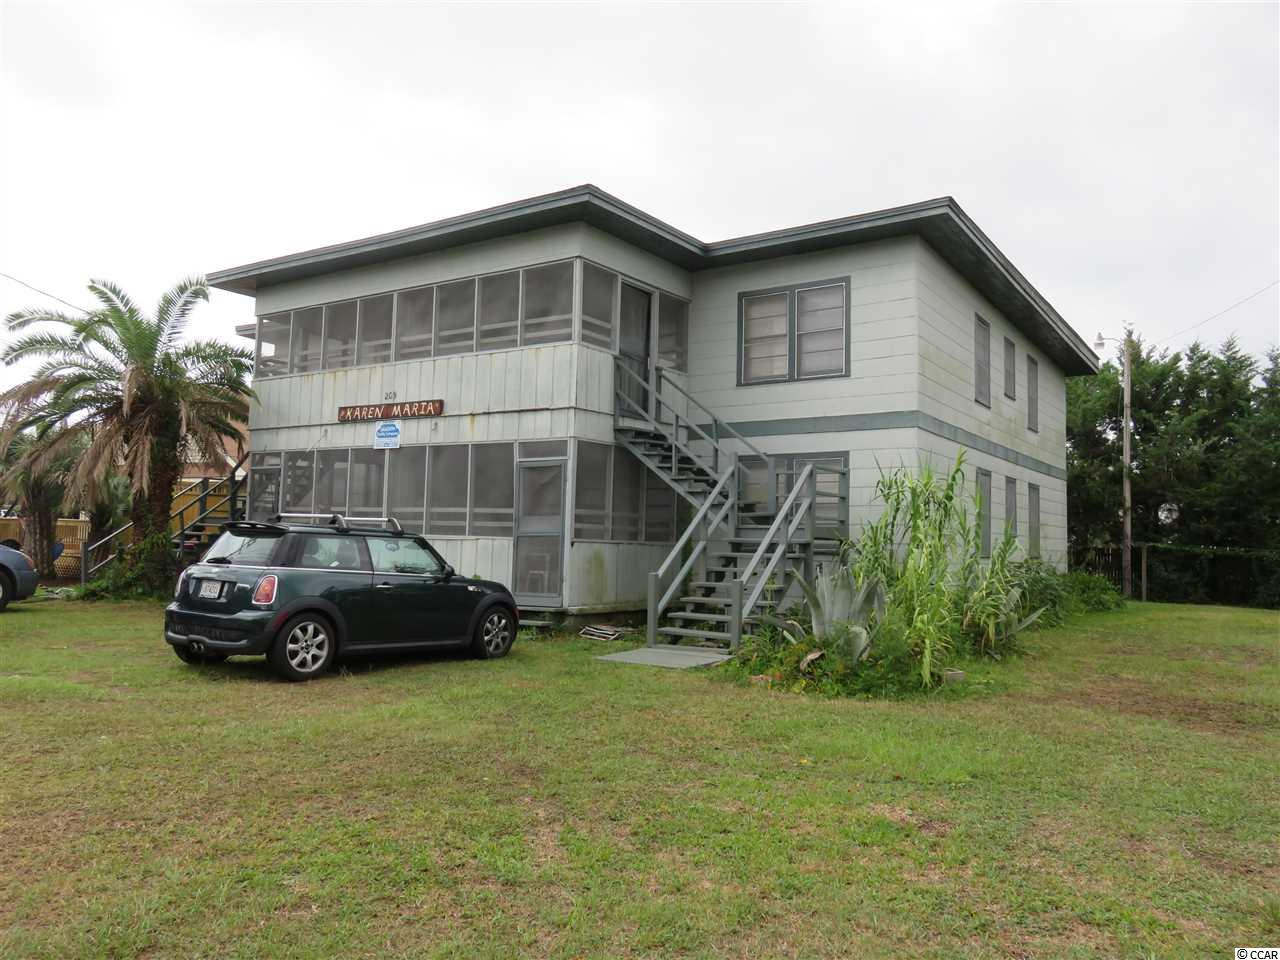 Close to the BEACH, large lot, 4 2 bedroom, 1 bath apts., screen porches , pine panel walls and ceiling, a/c units per apt., rented in the summer months some spring and fall.  Needs TLC.  Call to show.